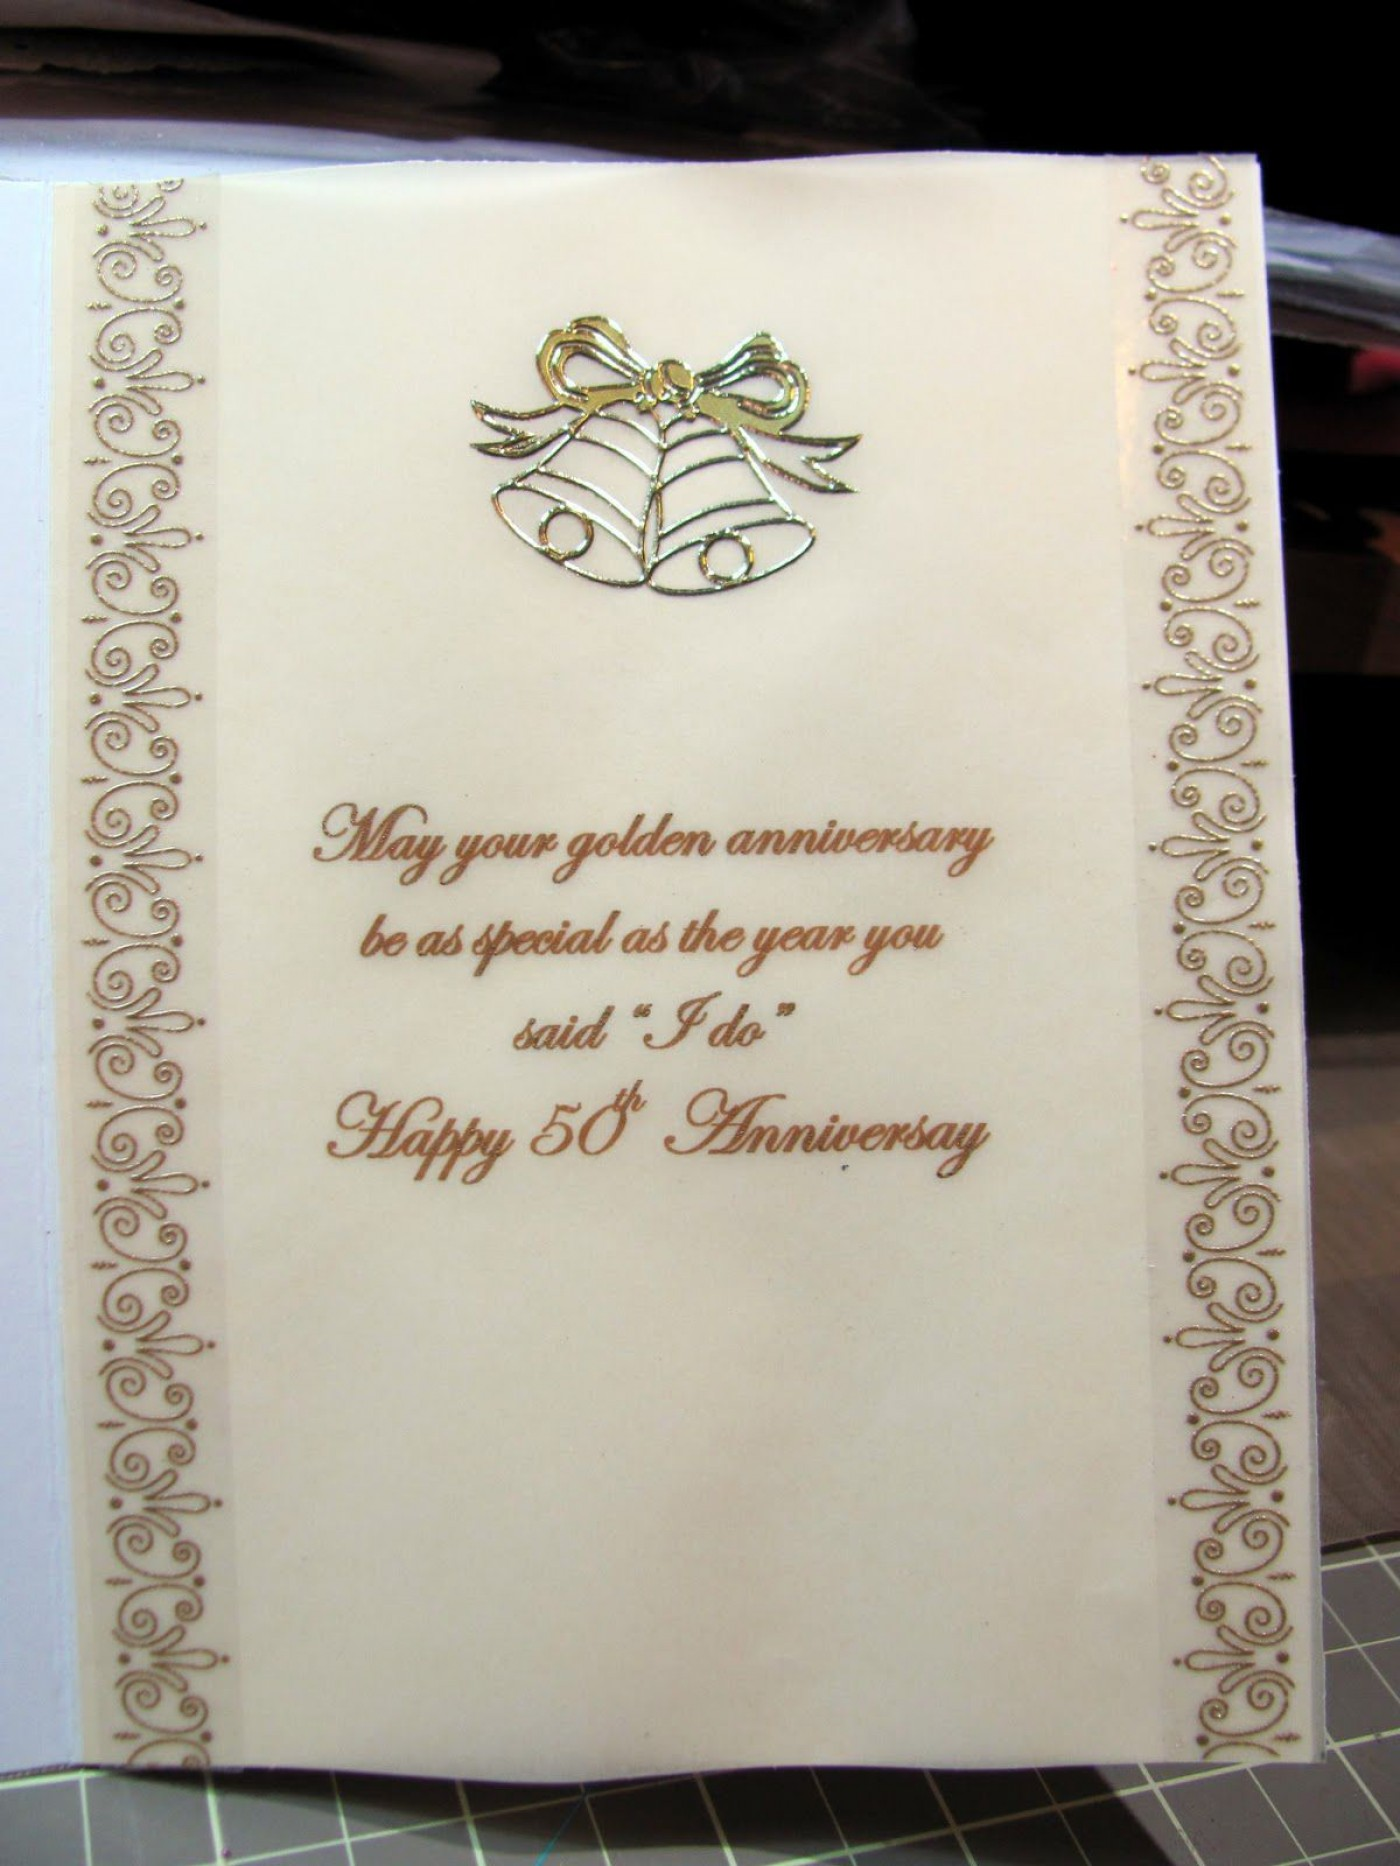 000 Awful 50th Anniversary Invitation Wording Sample Concept  Wedding 60th In Tamil Birthday1400